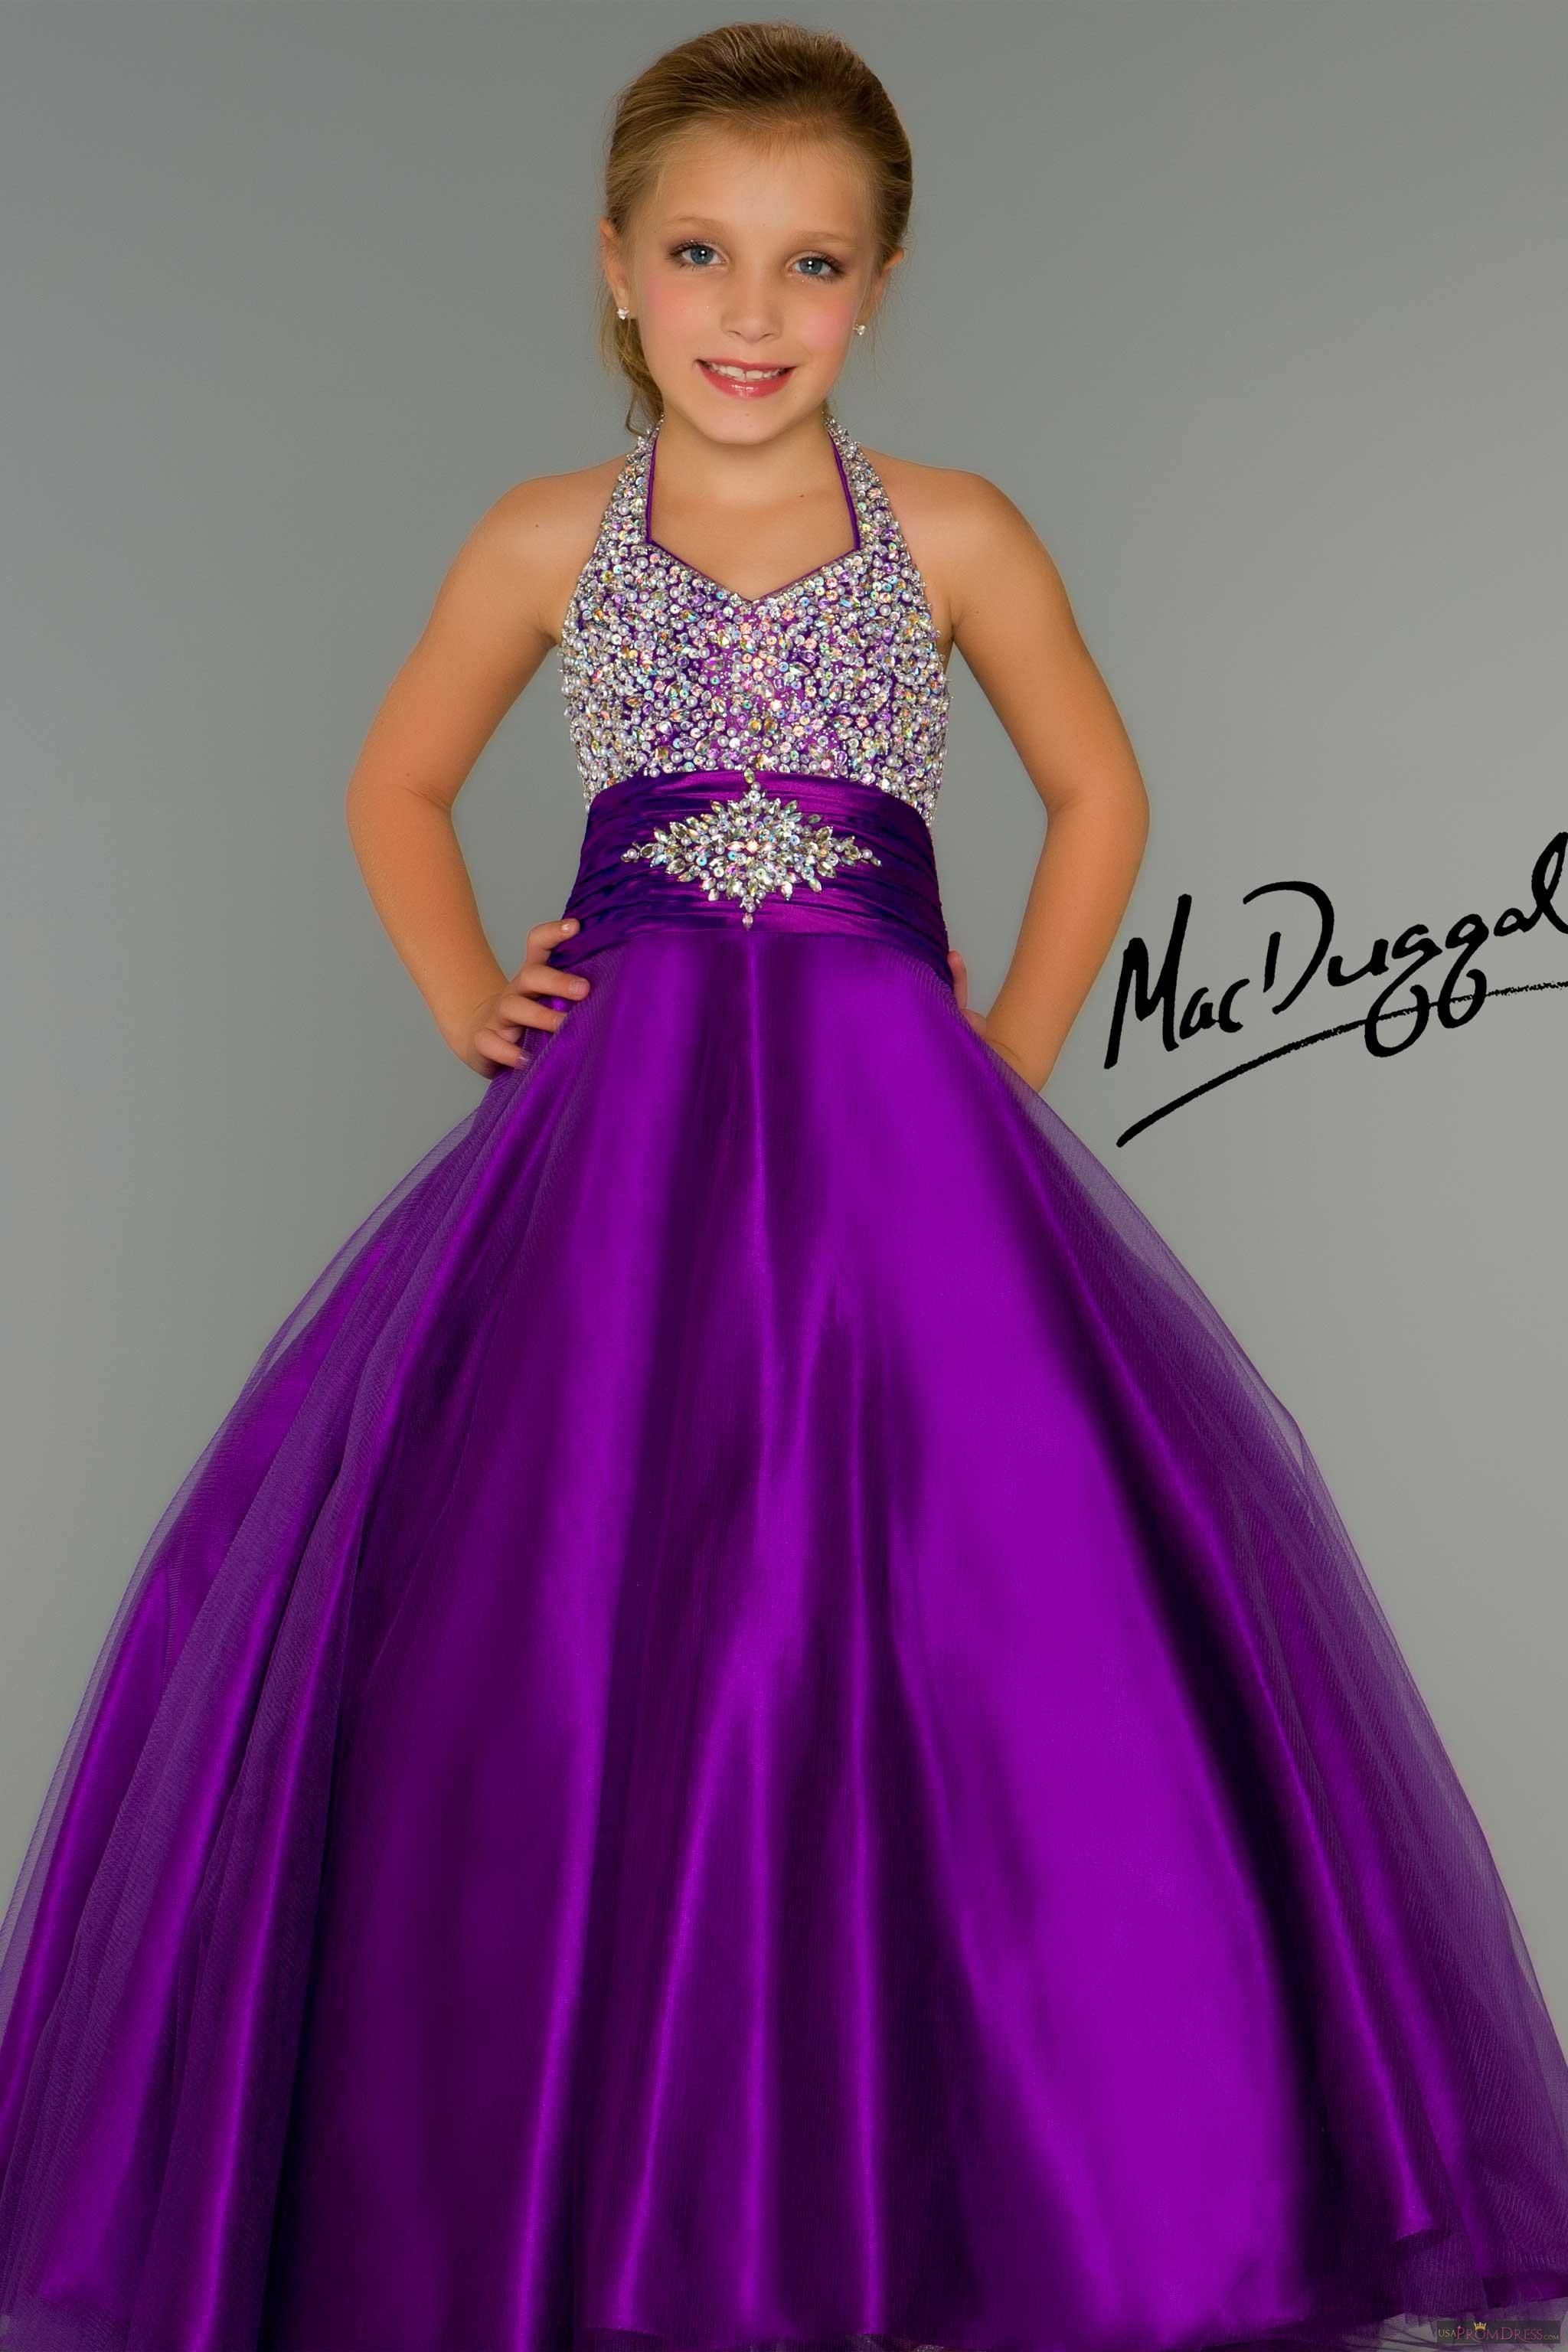 Mac Duggal Dress 81527s Color Purple Red White Size 02 14